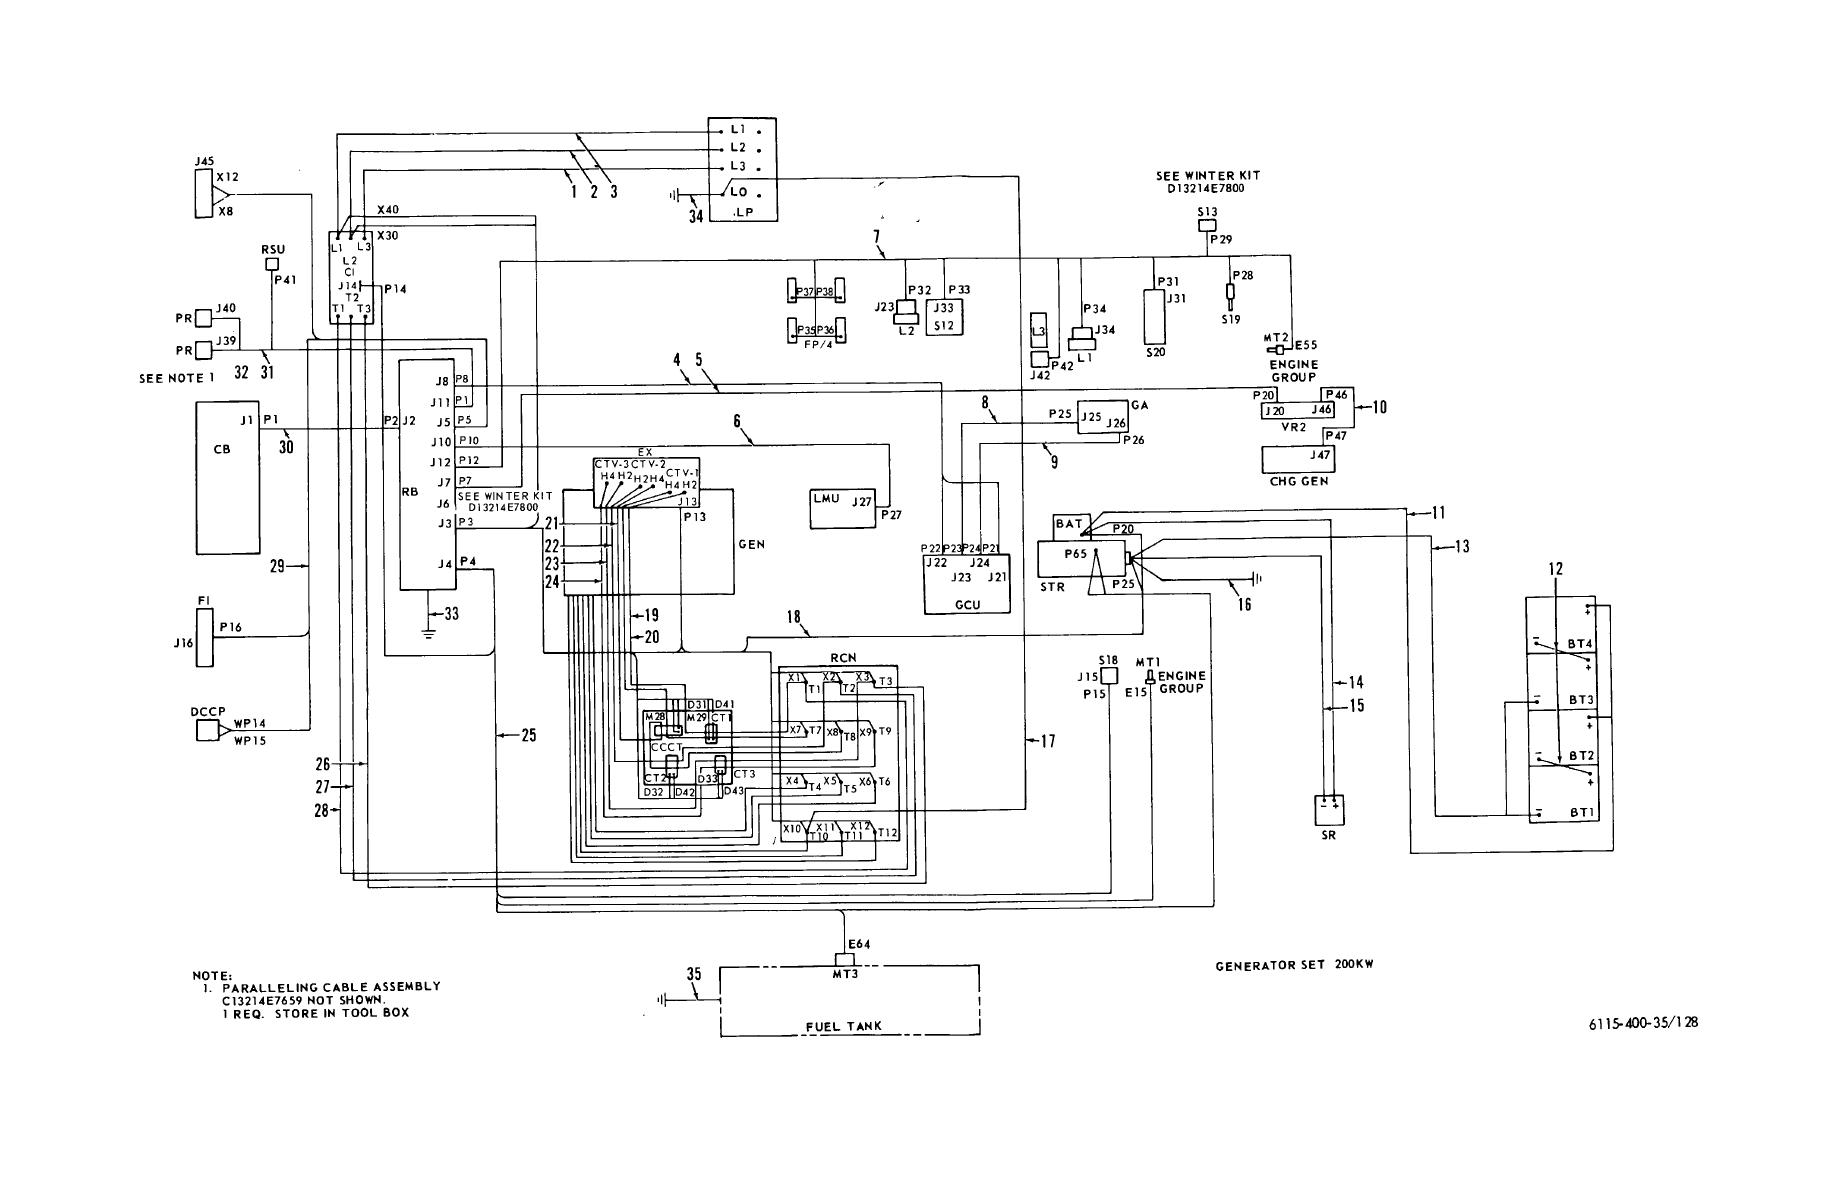 220 single phase us wiring diagram 220 wiring diagram collections 3 wire 240 wiring diagrams